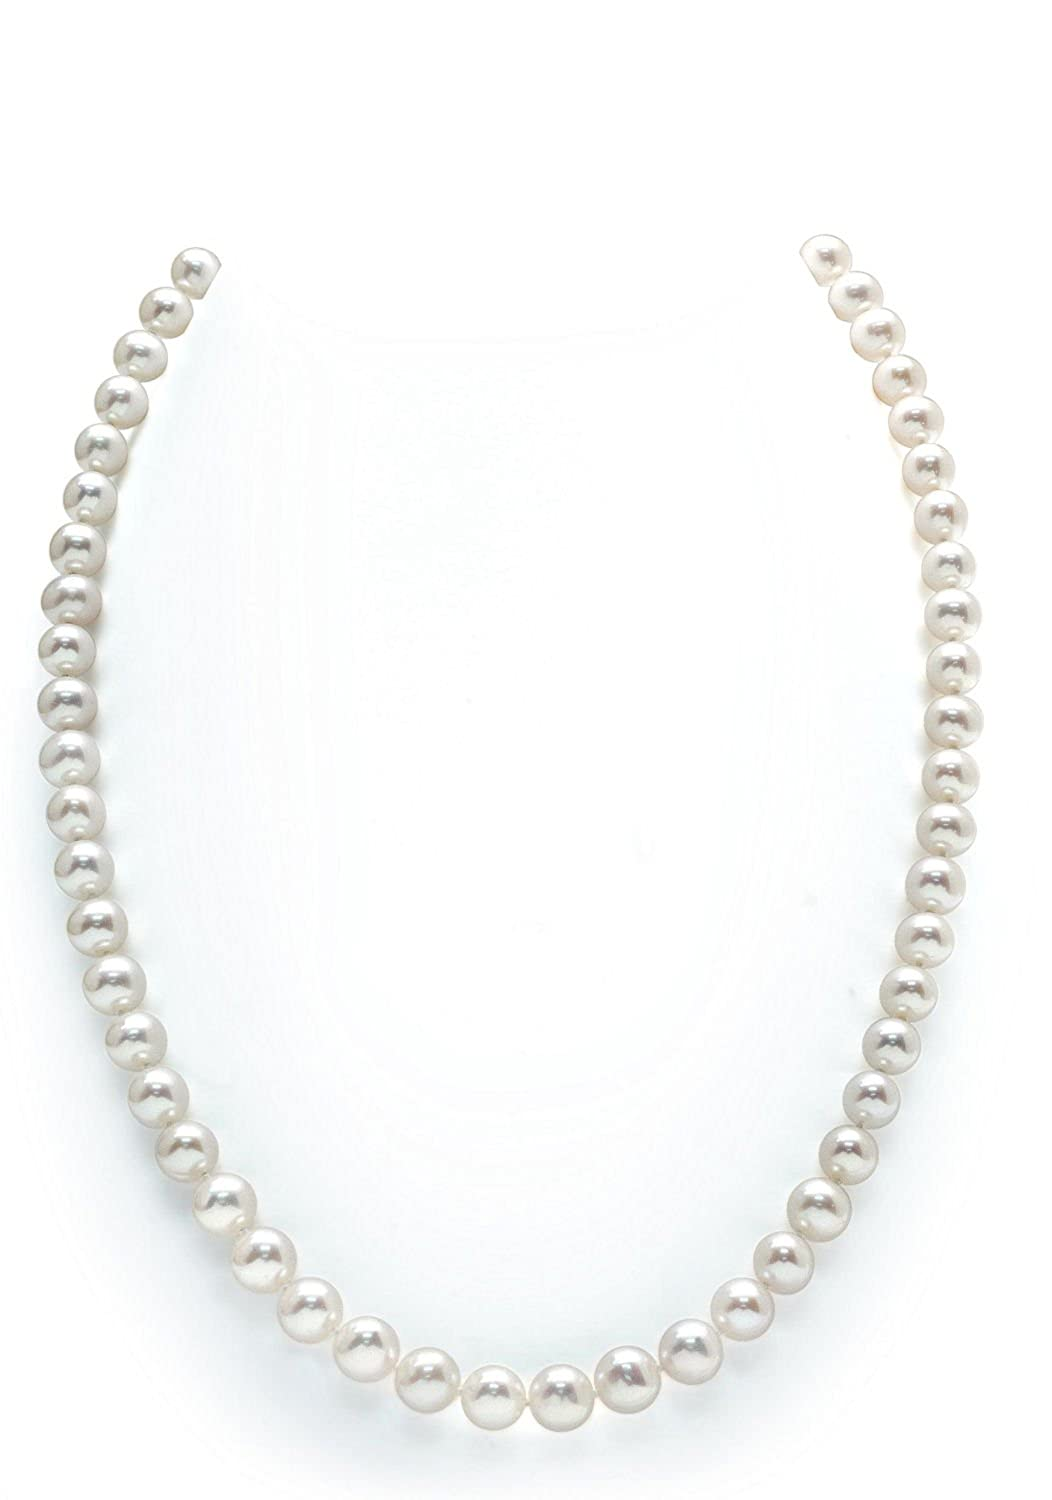 sea white round pearls pearl loose south